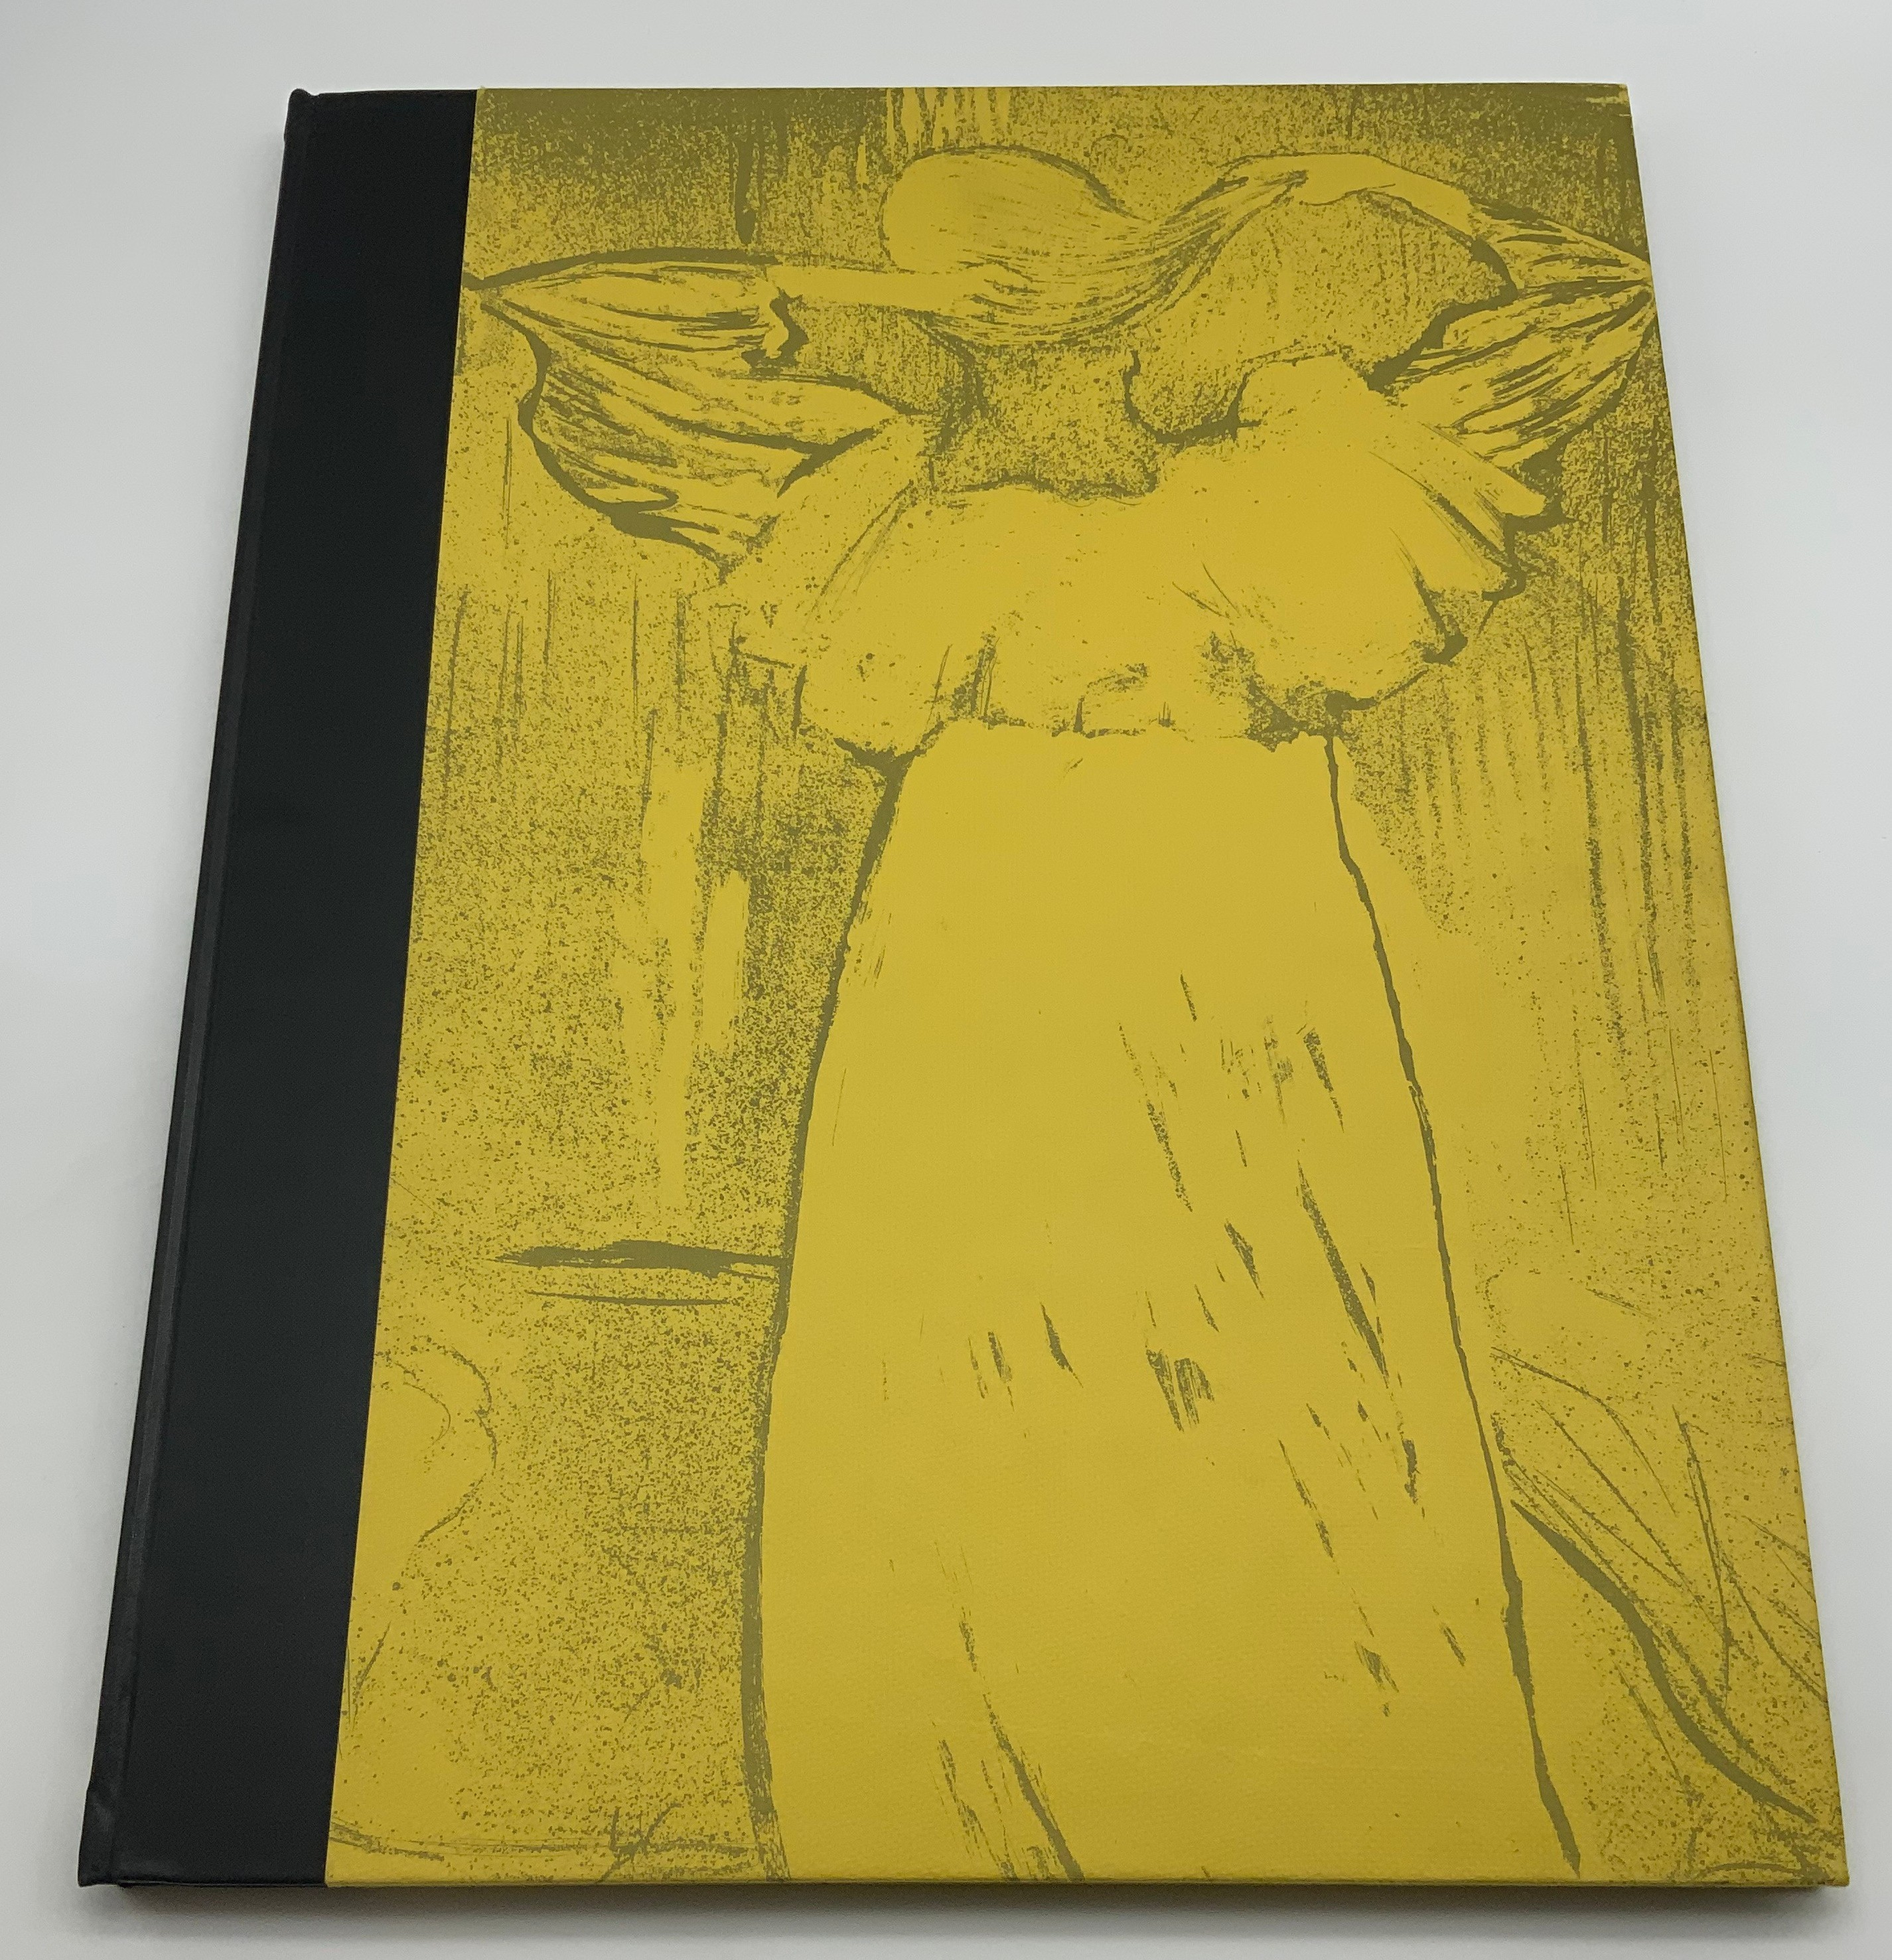 ELLES THE TOULOUSE-LAUTREC CIRCLE, 1969 HARDCOVER 1ST EDITION LIMITED EDITION - Image 5 of 6